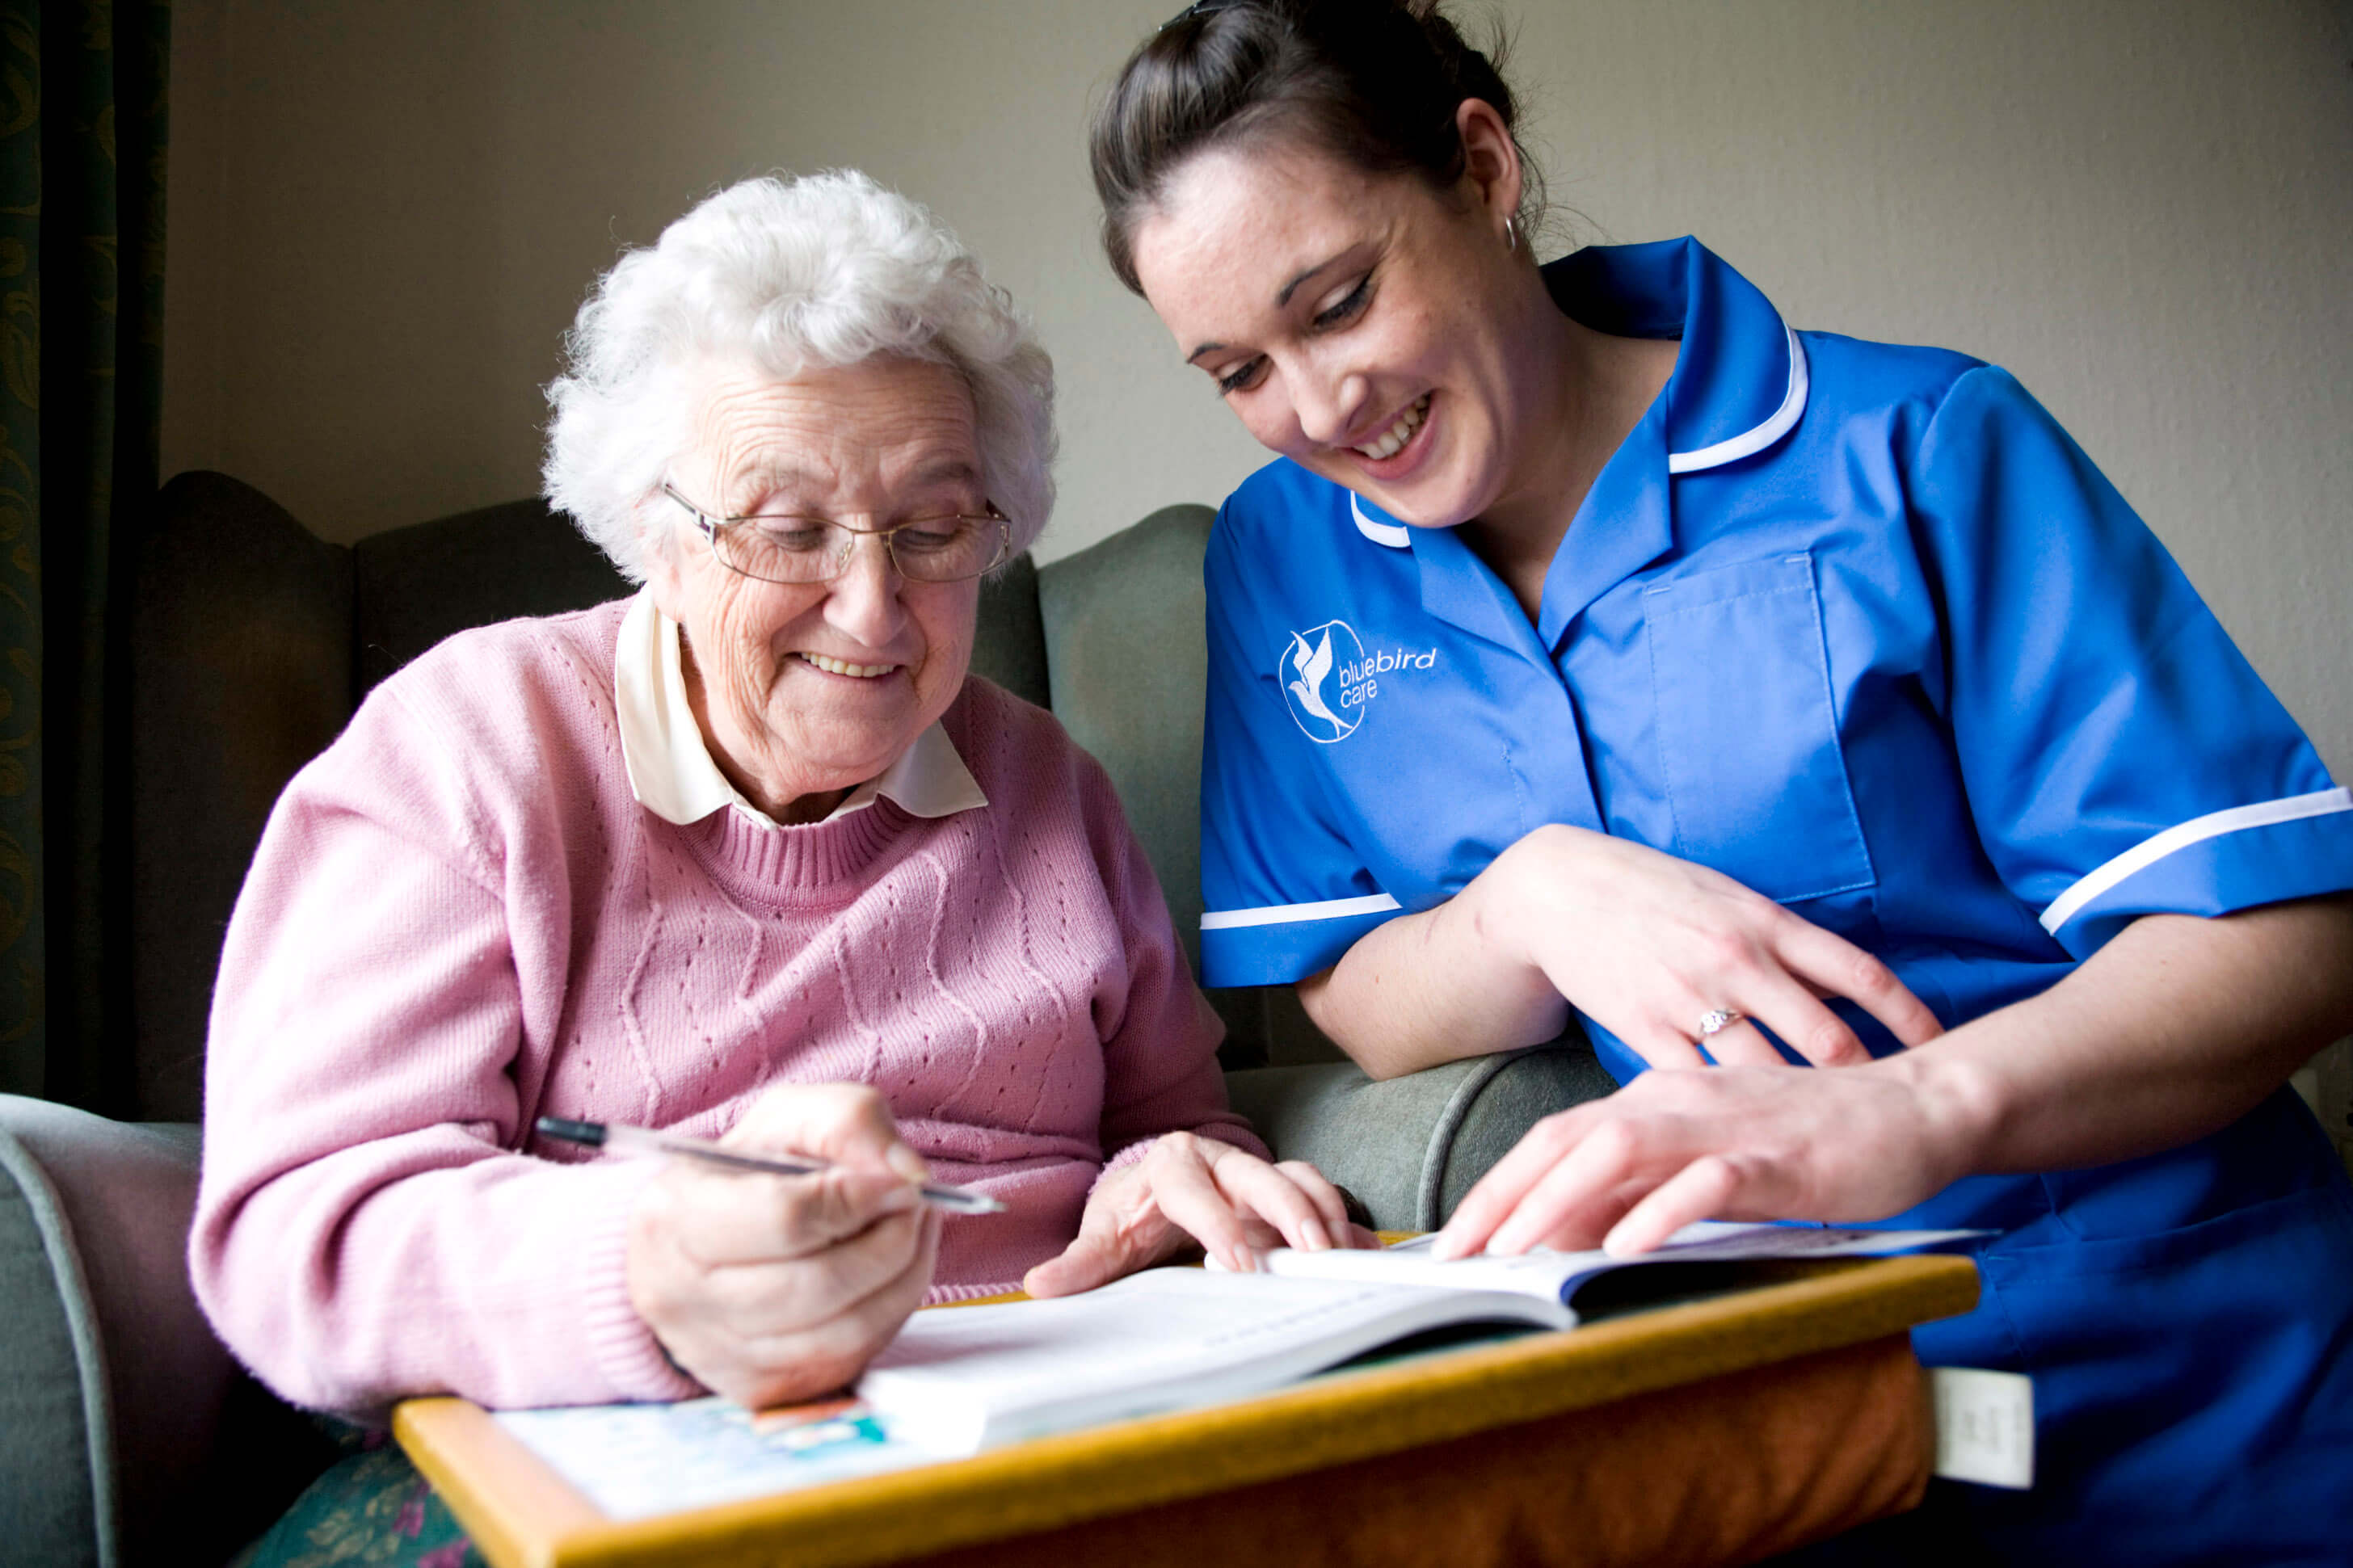 Bluebird Care has launched an initiative to provide free hospital visits for all its customers